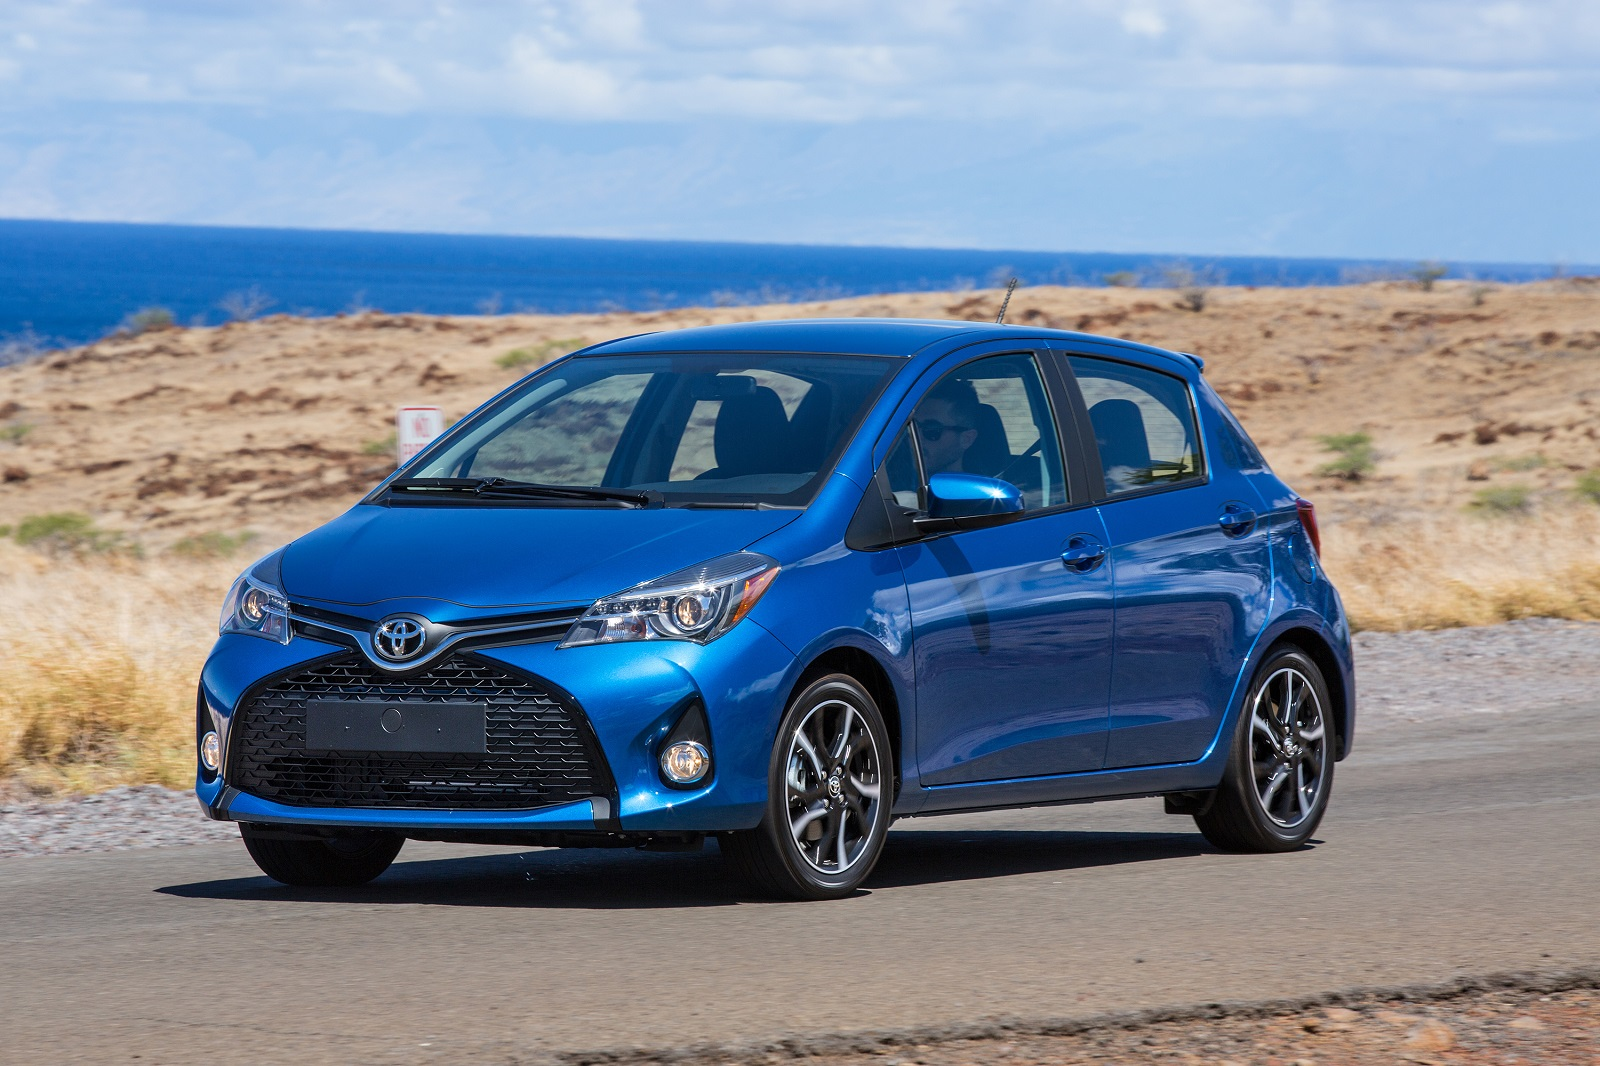 2016 Toyota Yaris Review, Ratings, Specs, Prices, and Photos - The Car Connection